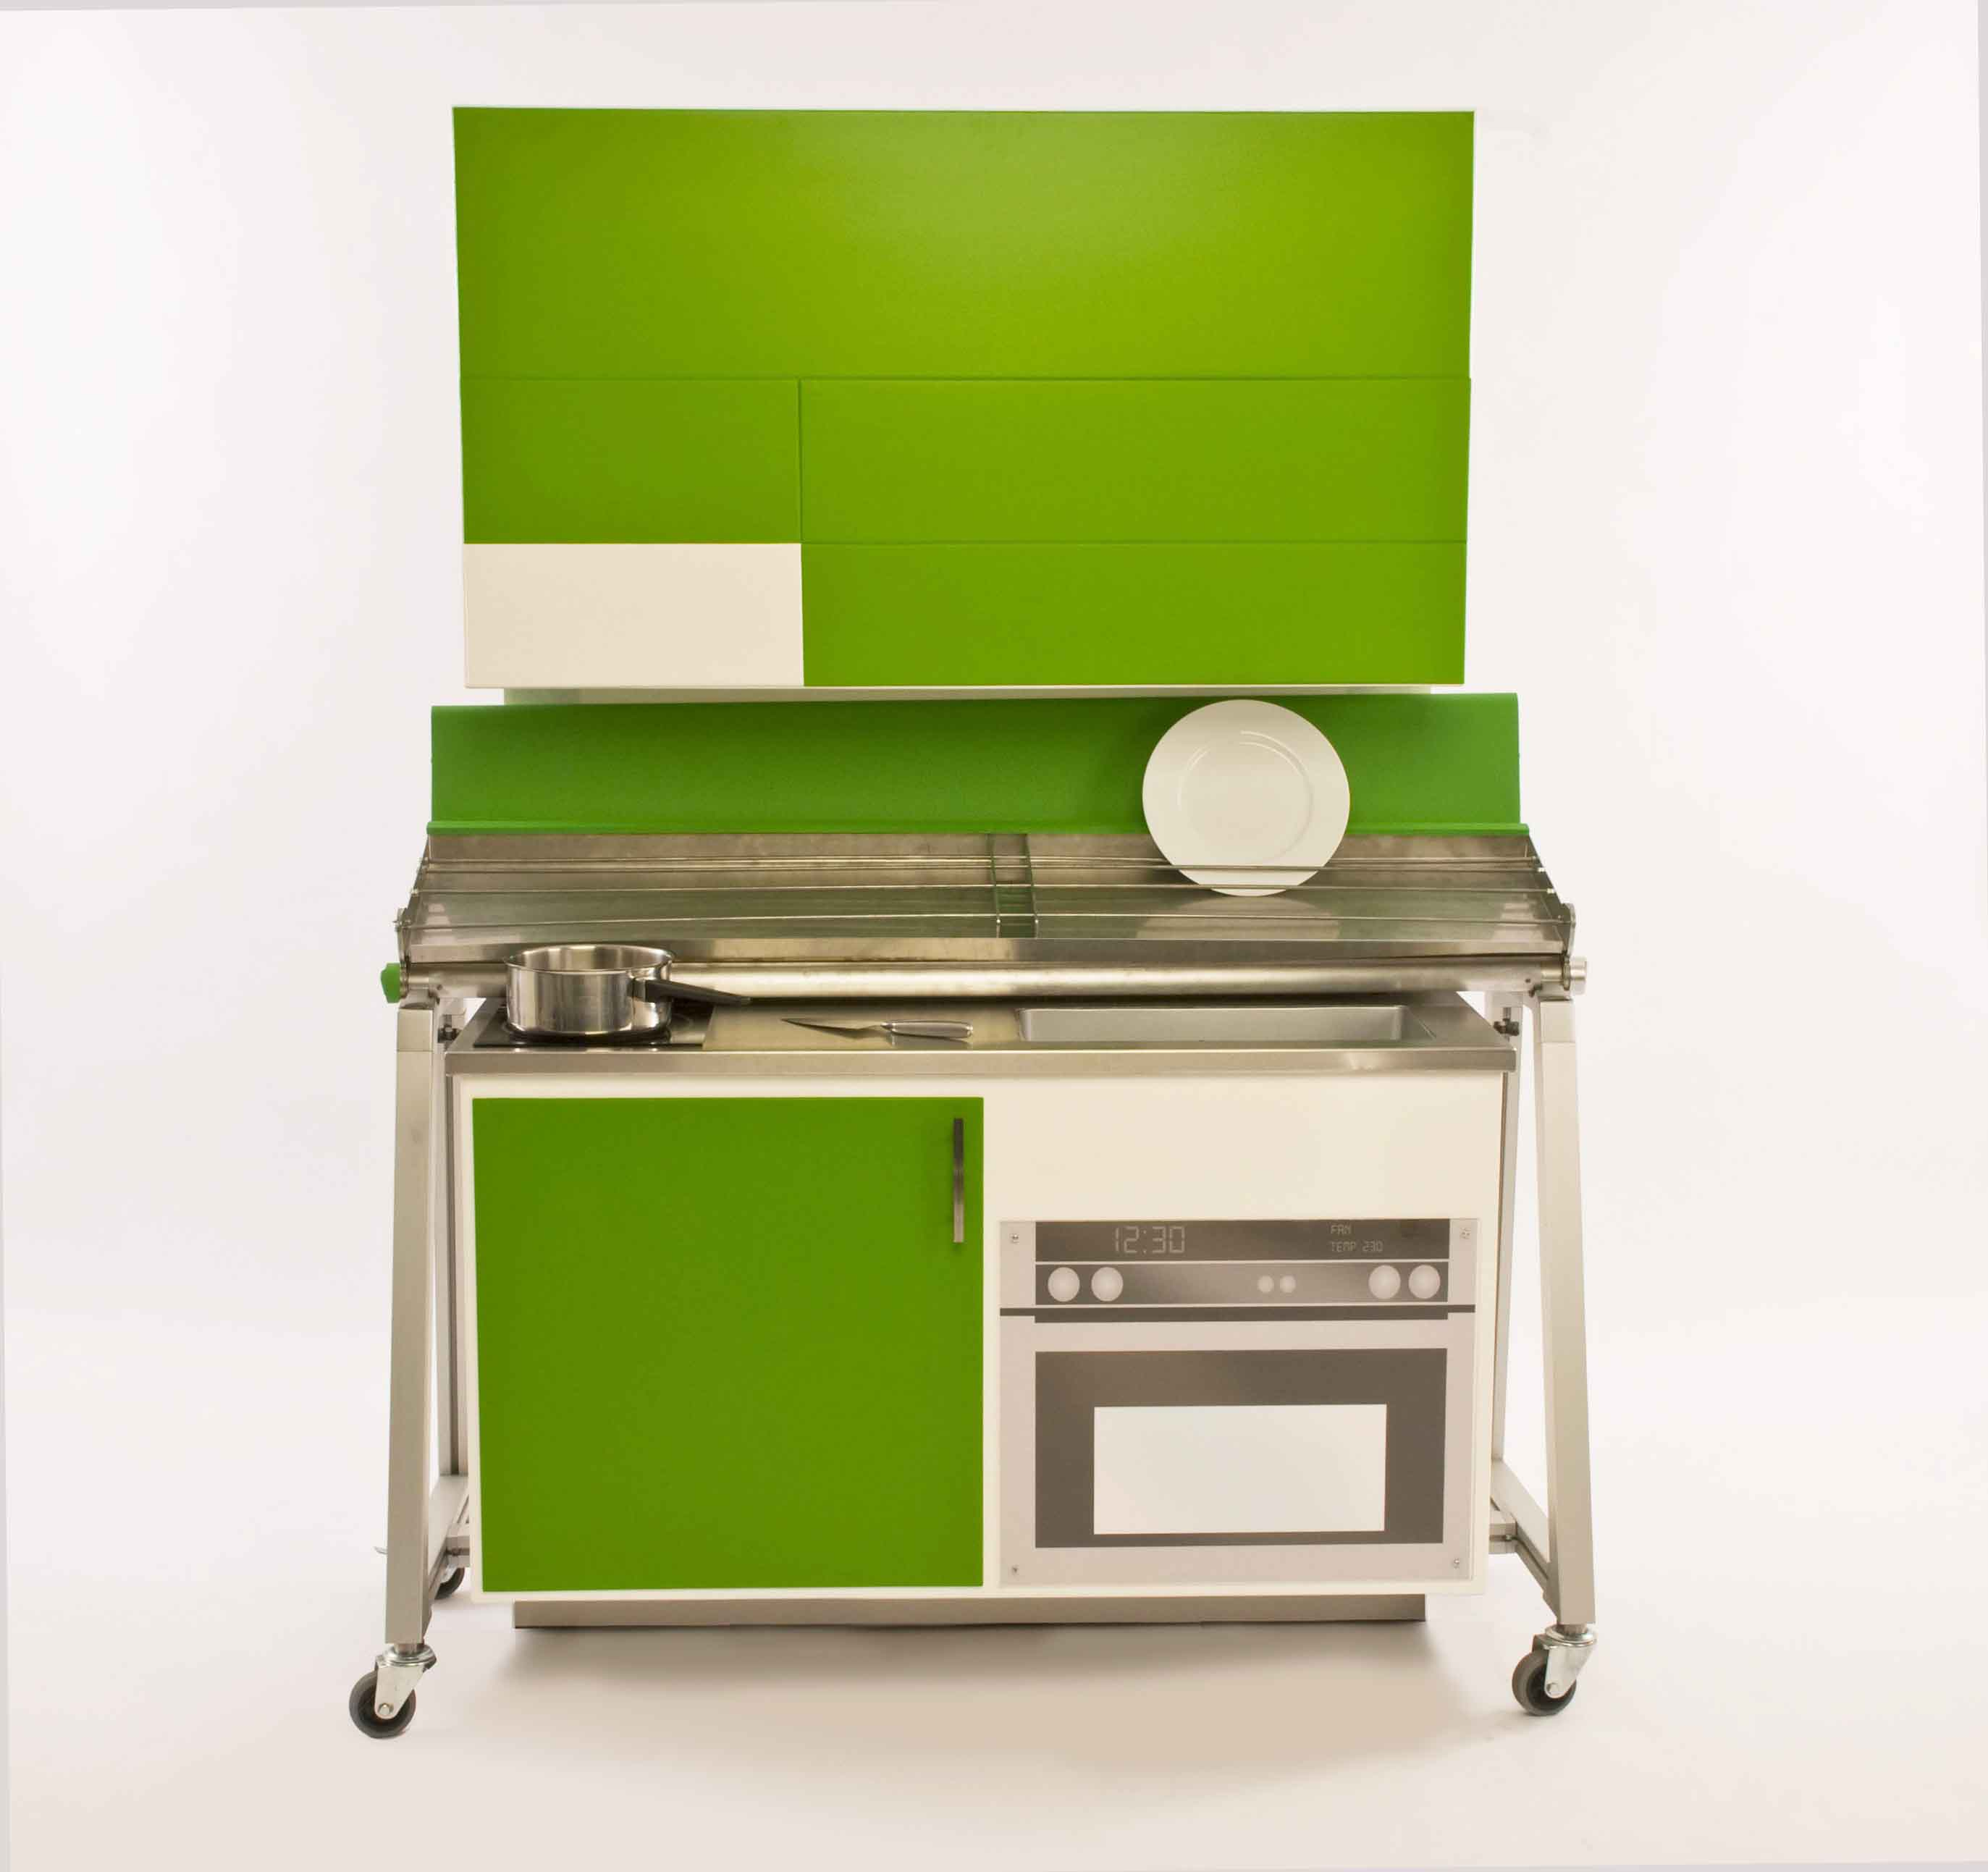 Micro Kitchen by Tommy Williams at Coroflotcom